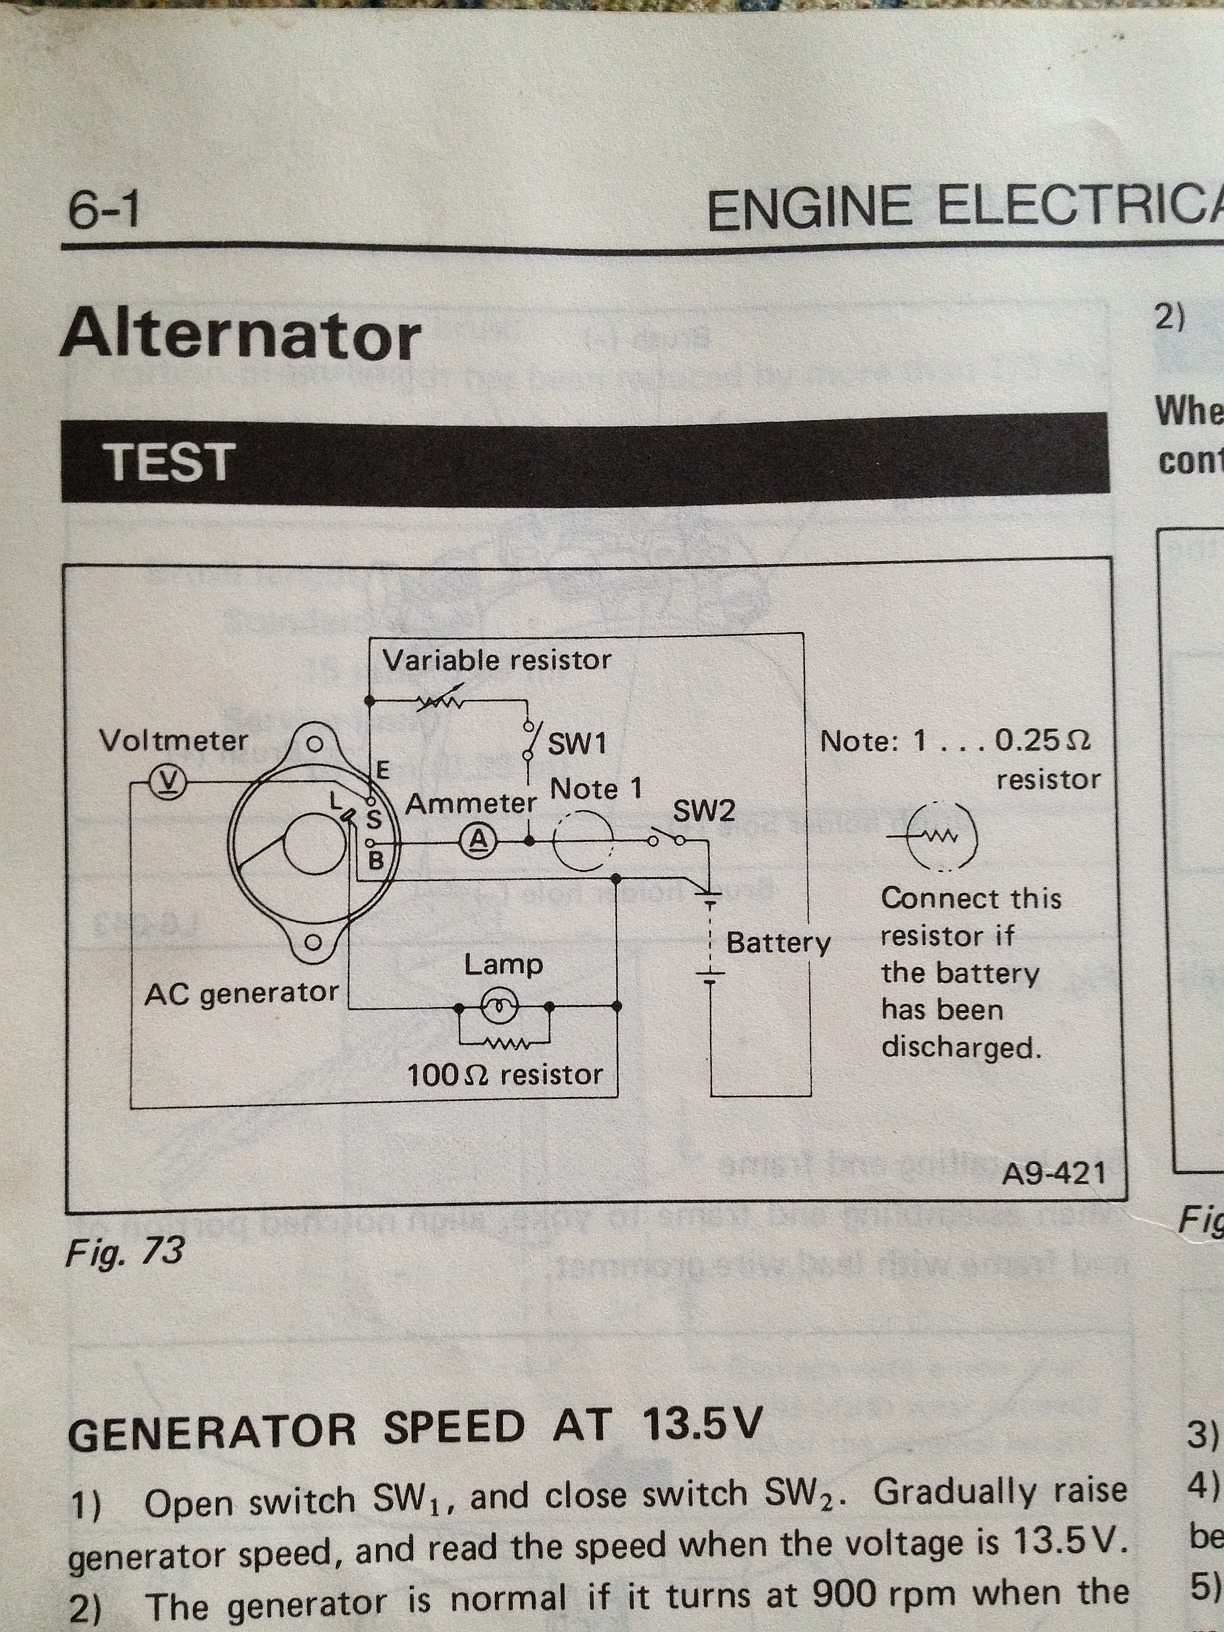 Subaru Alternator Wiring Diagram Electrical Schematics Luxury 07 Xl7 Heated Seat House